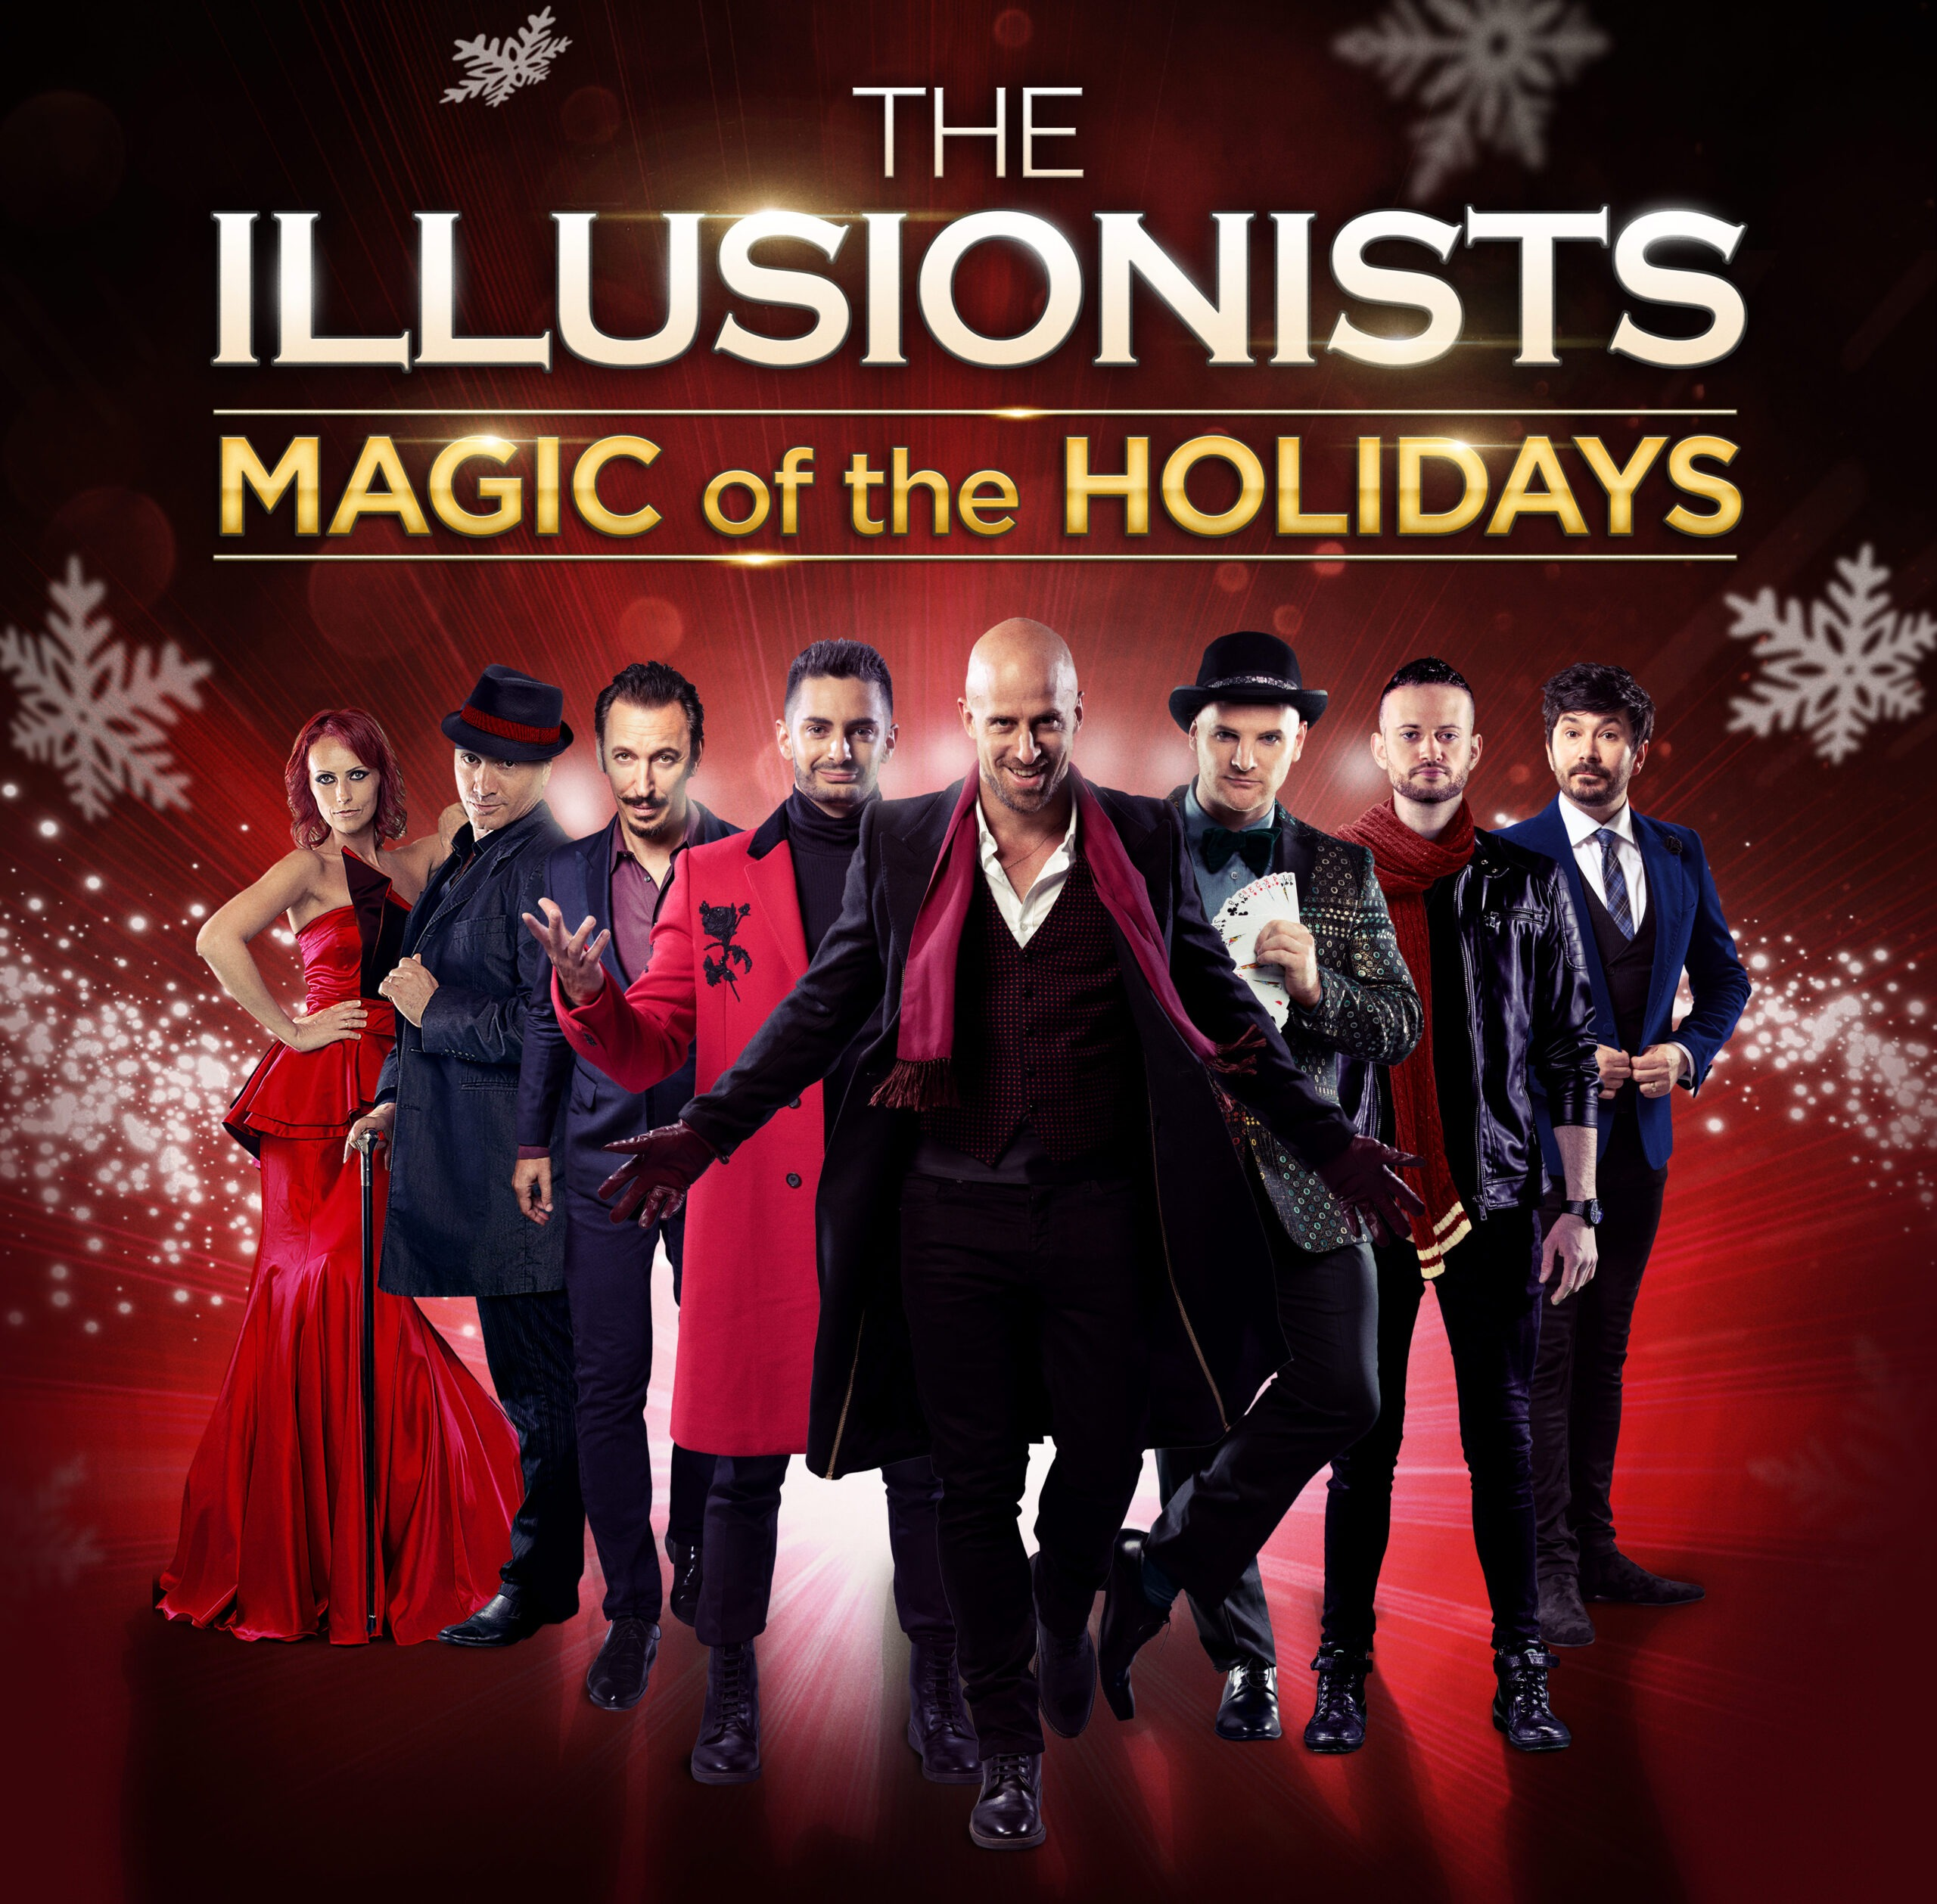 THE ILLUSIONISTS - MAGIC OF THE HOLIDAYS Event page & Ticketing Link